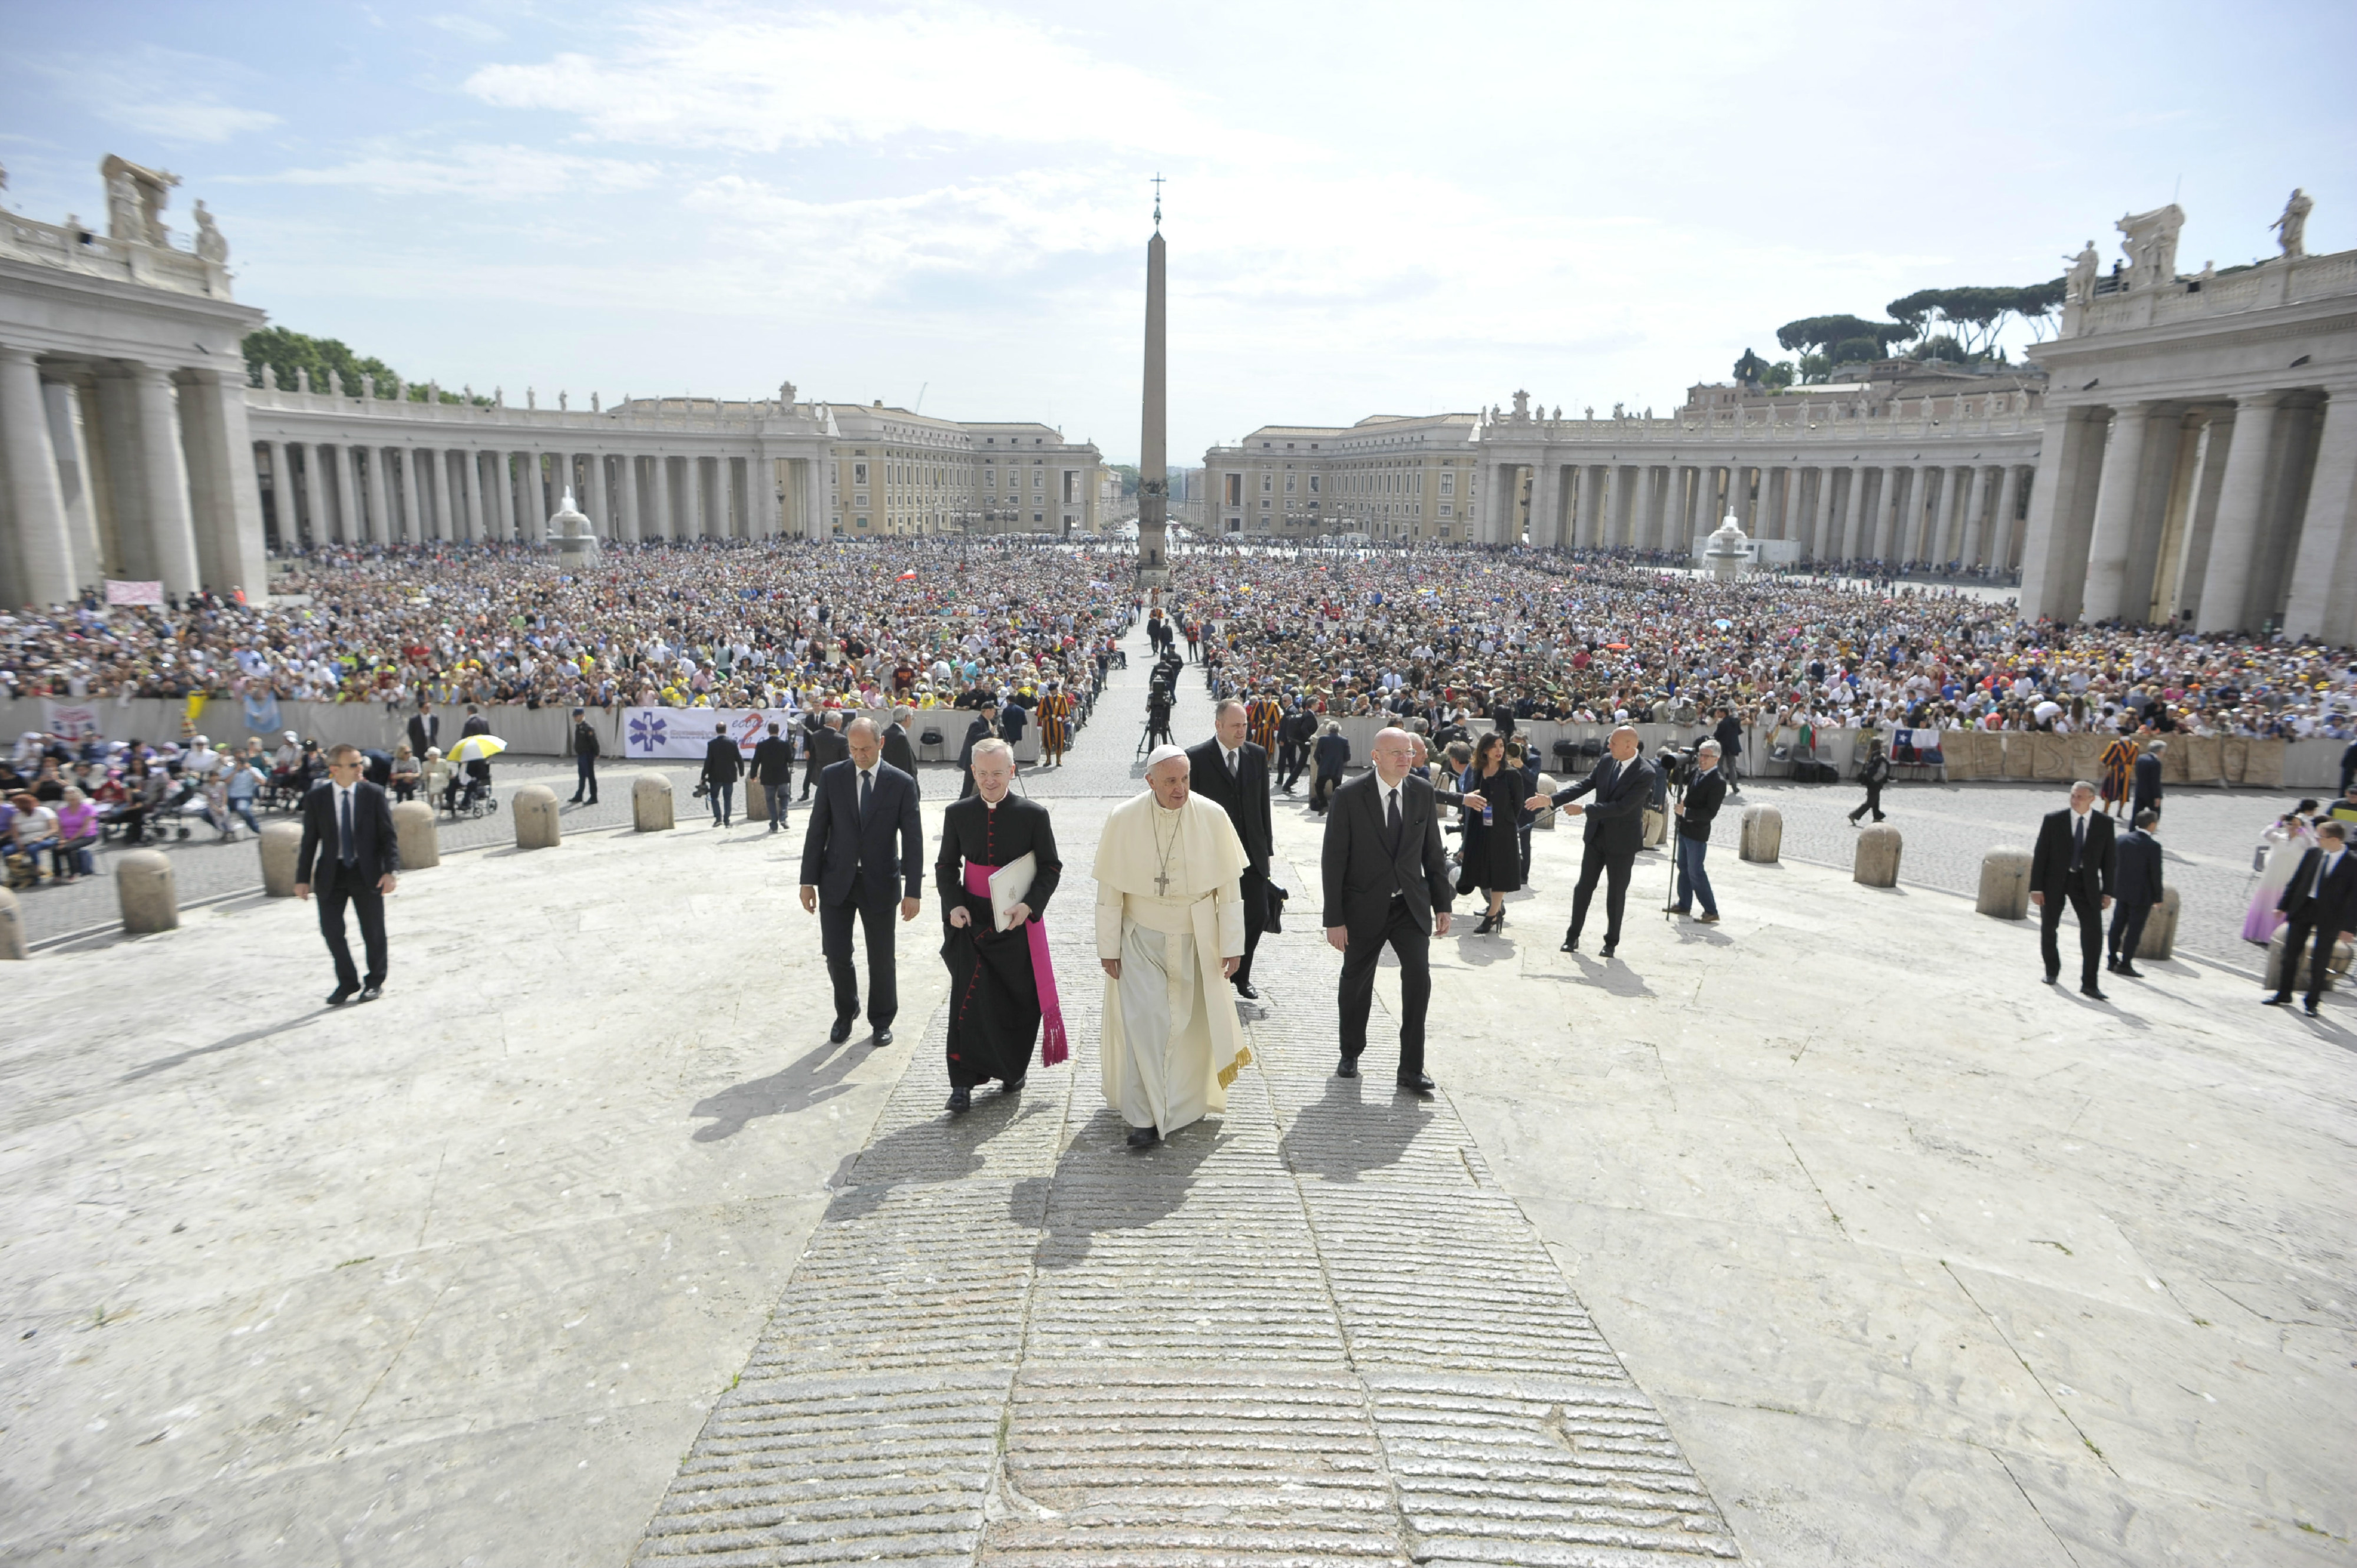 Pope Francis during the General Audience of Wednesday 20th of May 2015